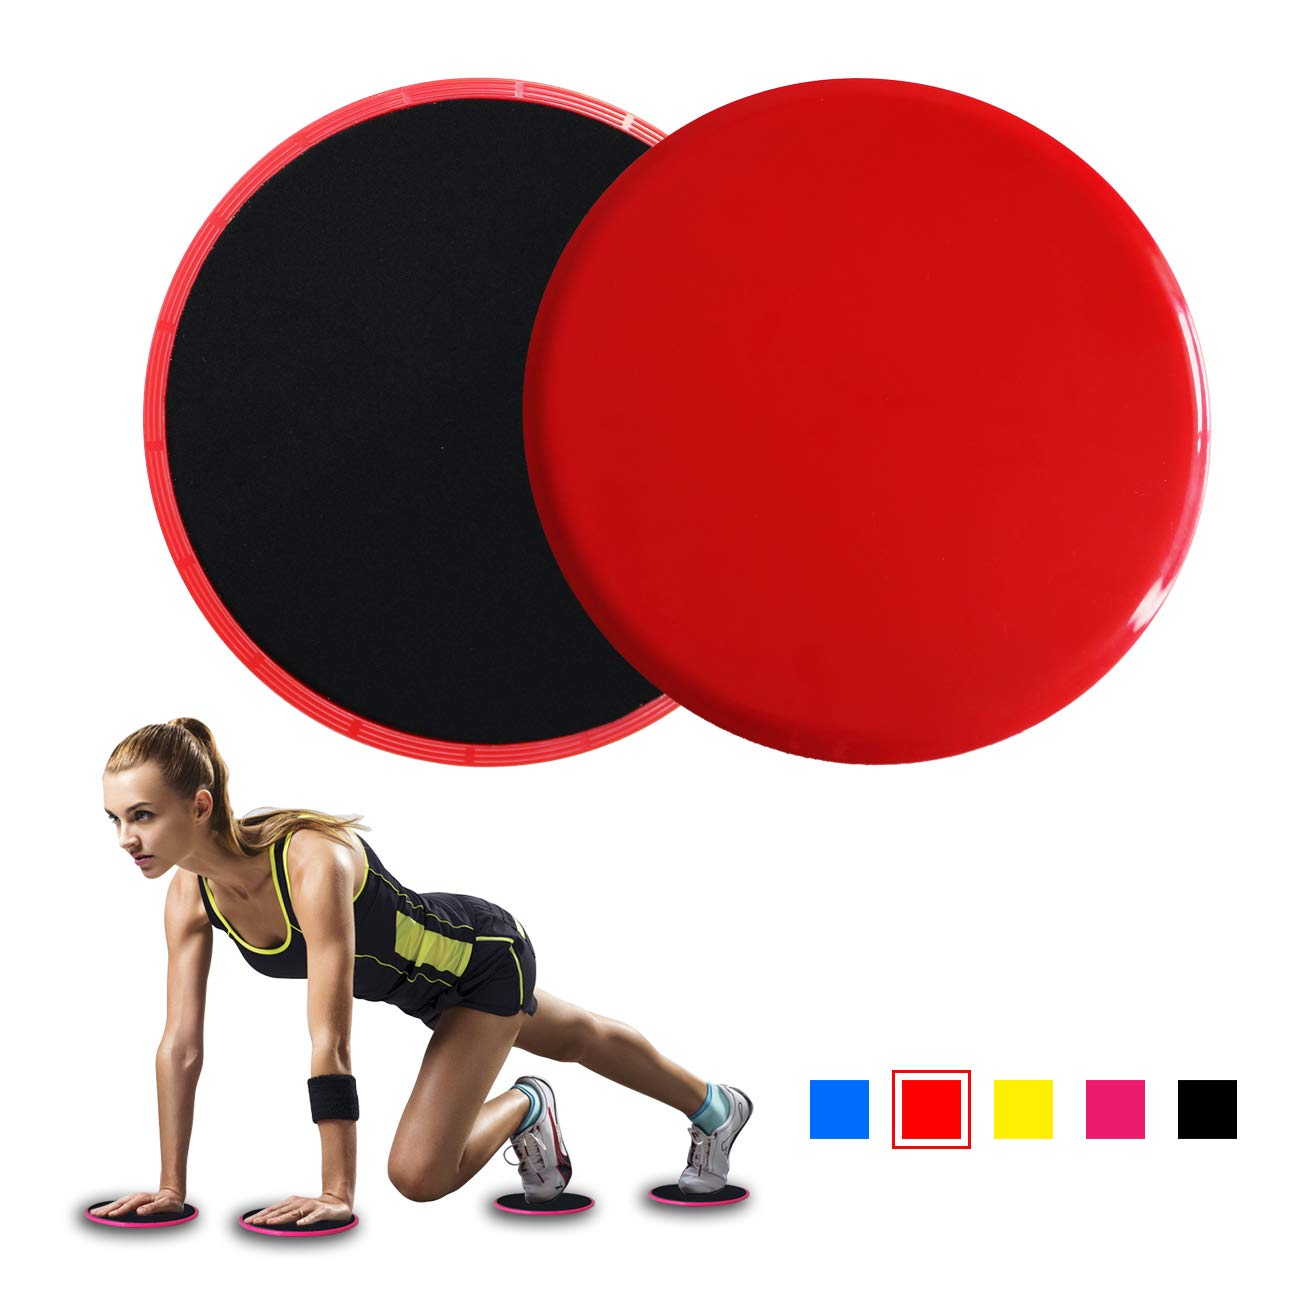 2PCs Dual Sided Core Sliders Compact Travel Home Workout Full Body Exercise Equipment Work Smoothly on Any Surface Dual Sided Use on Carpet or Hardwood Floor Low-Impact Exercises to Strengthen Core Abs Full Body Workout IDEALUX Exercise Sliders